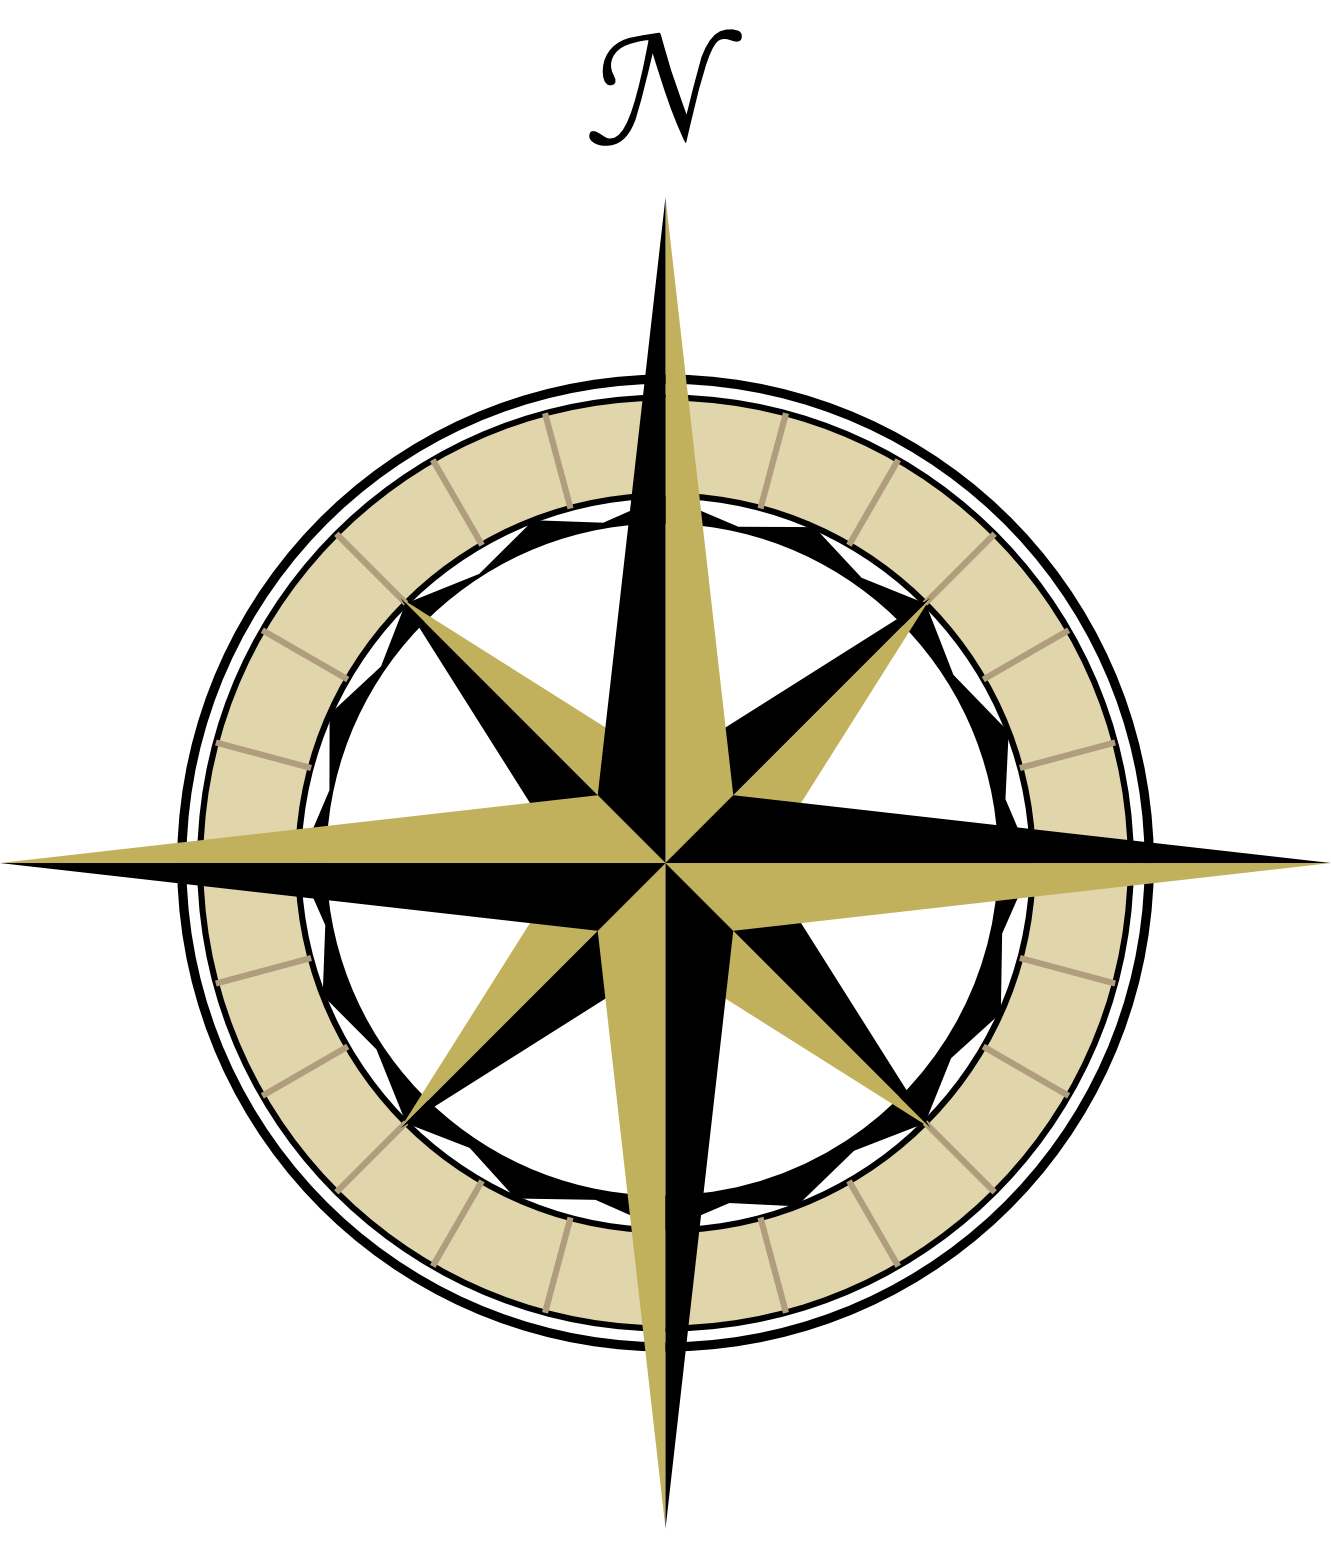 Compass Pointing East Tattoo Images Of Compass Rose...